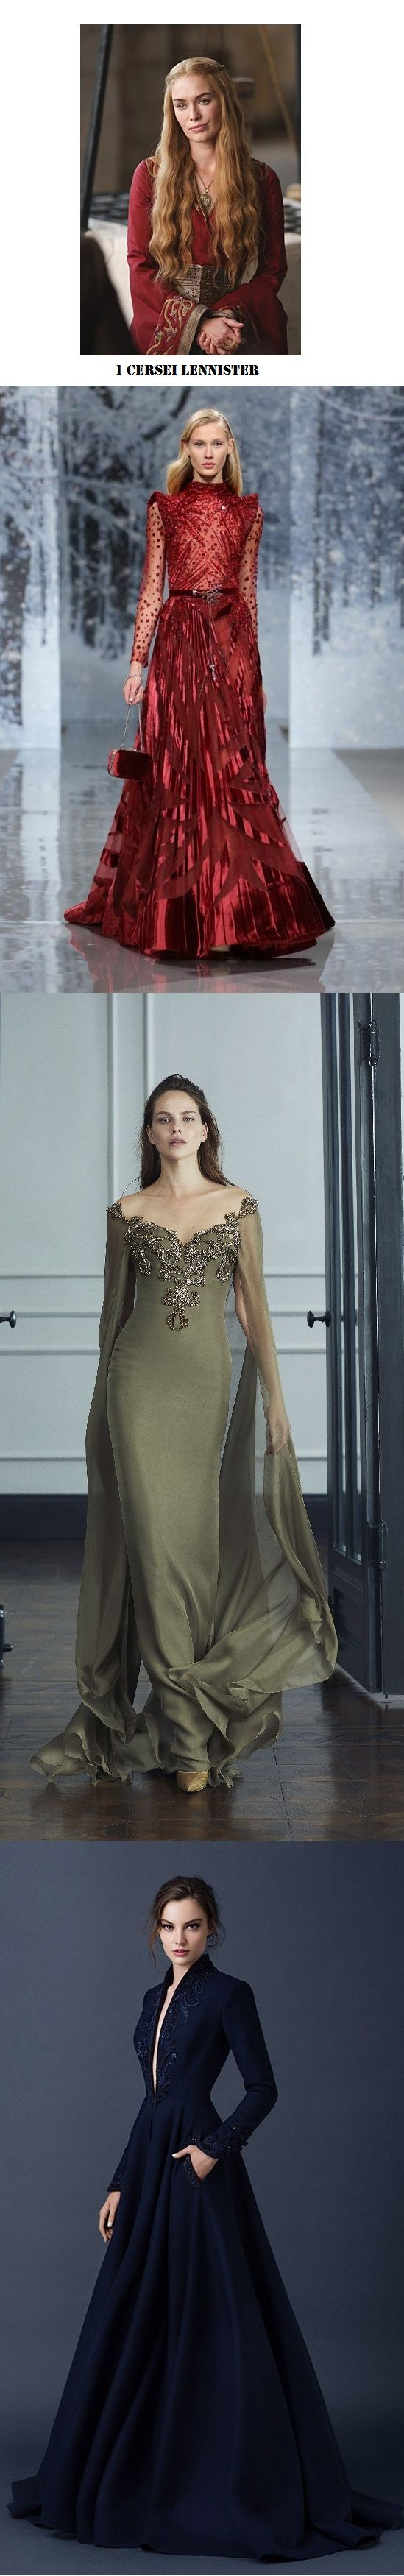 Designer Gowns that might as well be out of the Game of Thrones Series: Cersei Lennister Compilation